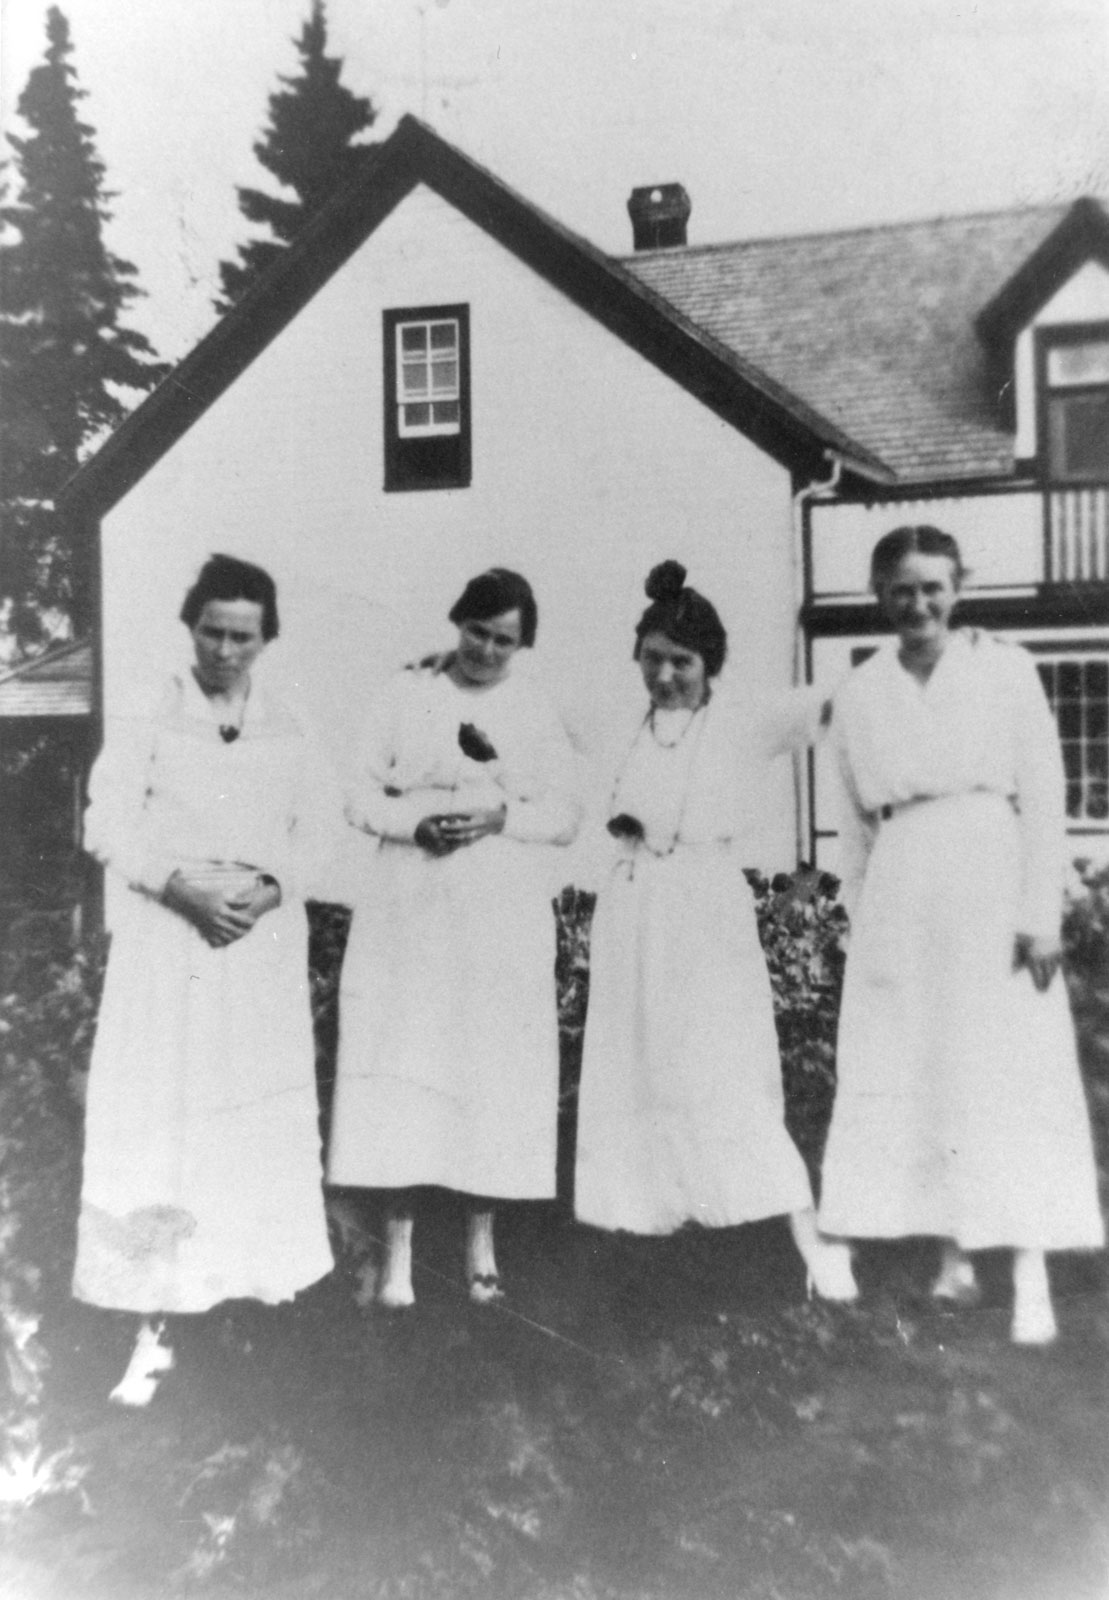 Four women pose in Pevensey in 1910. <br>Courtesy the Sundridge - Strong Union Public Library.